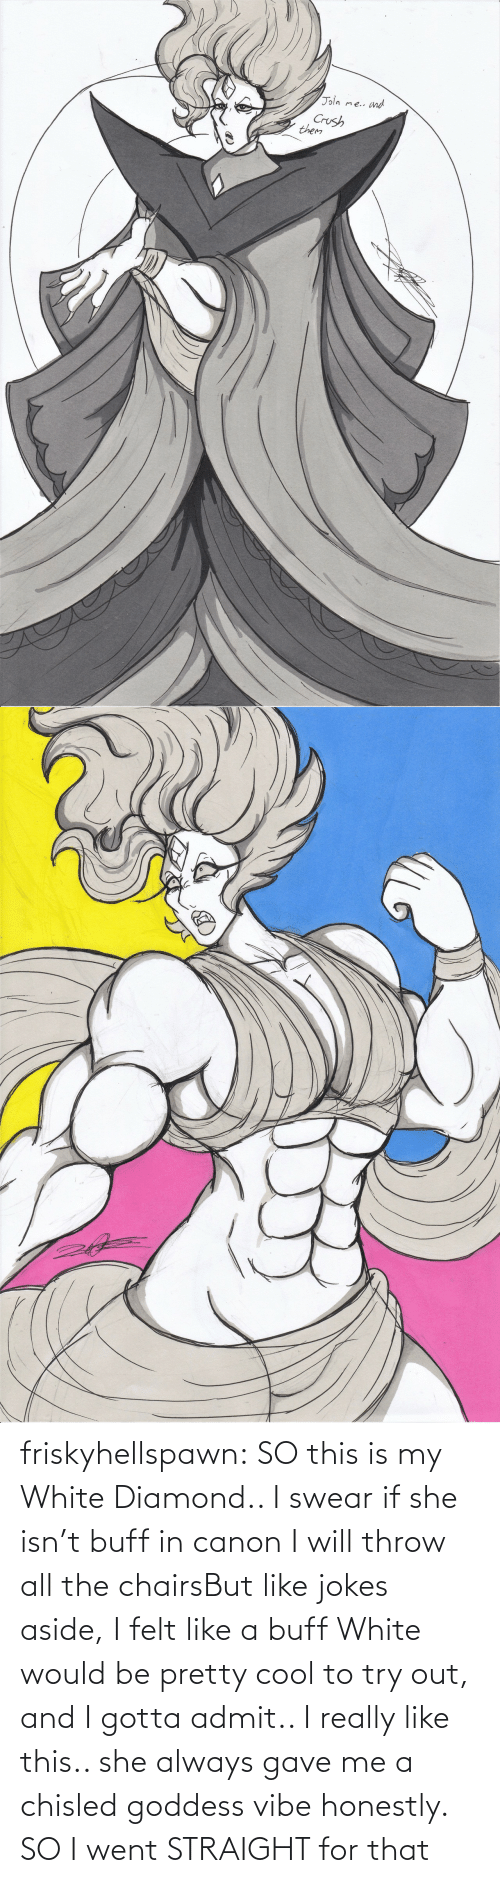 straight: friskyhellspawn:  SO this is my White Diamond.. I swear if she isn't buff in canon I will throw all the chairsBut like jokes aside, I felt like a buff White would be pretty cool to try out, and I gotta admit.. I really like this.. she always gave me a chisled goddess vibe honestly. SO I went STRAIGHT for that